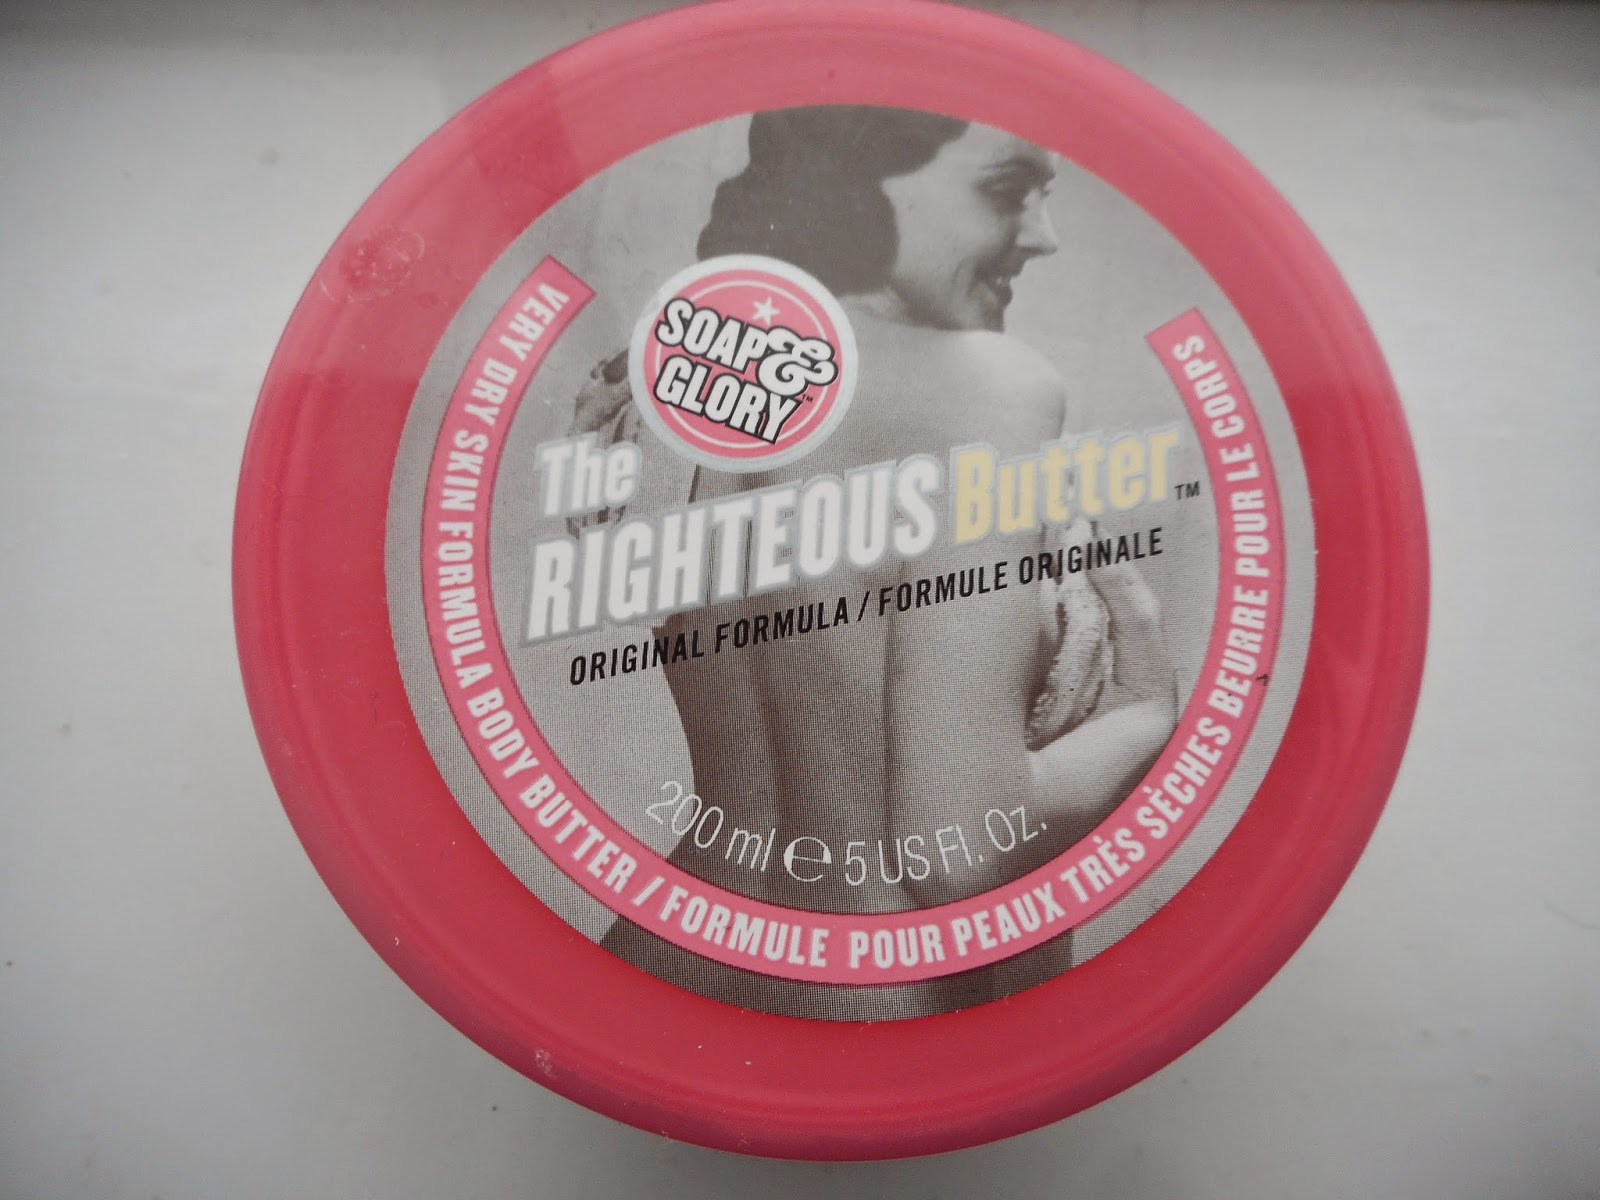 http://sophaarambles.blogspot.co.uk/2015/03/soap-and-glory-righteous-butter.html